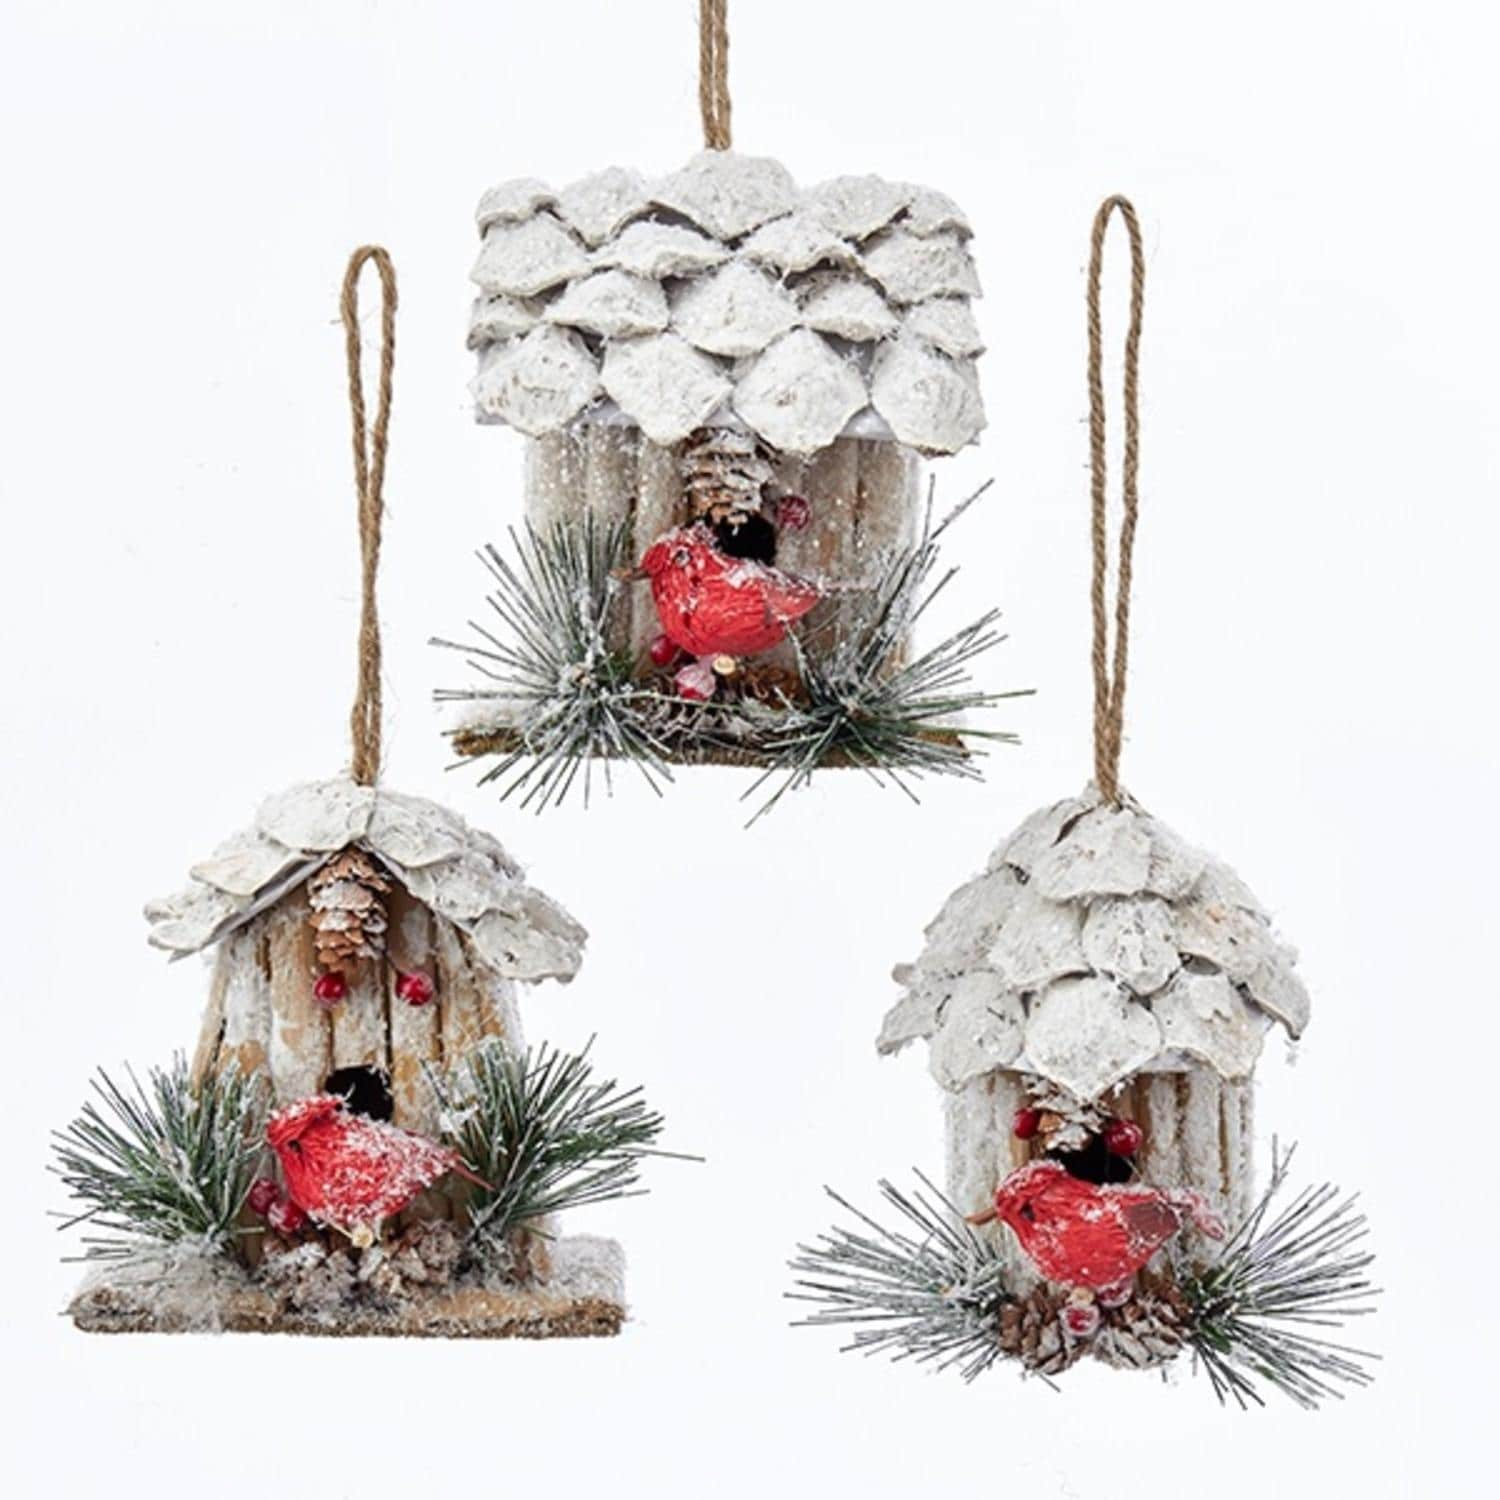 Shop Pack Of 12 Assorted Pine Cone And Twig Birdhouses With Cardinal Bird Christmas Ornaments 3 5 Overstock 22577273